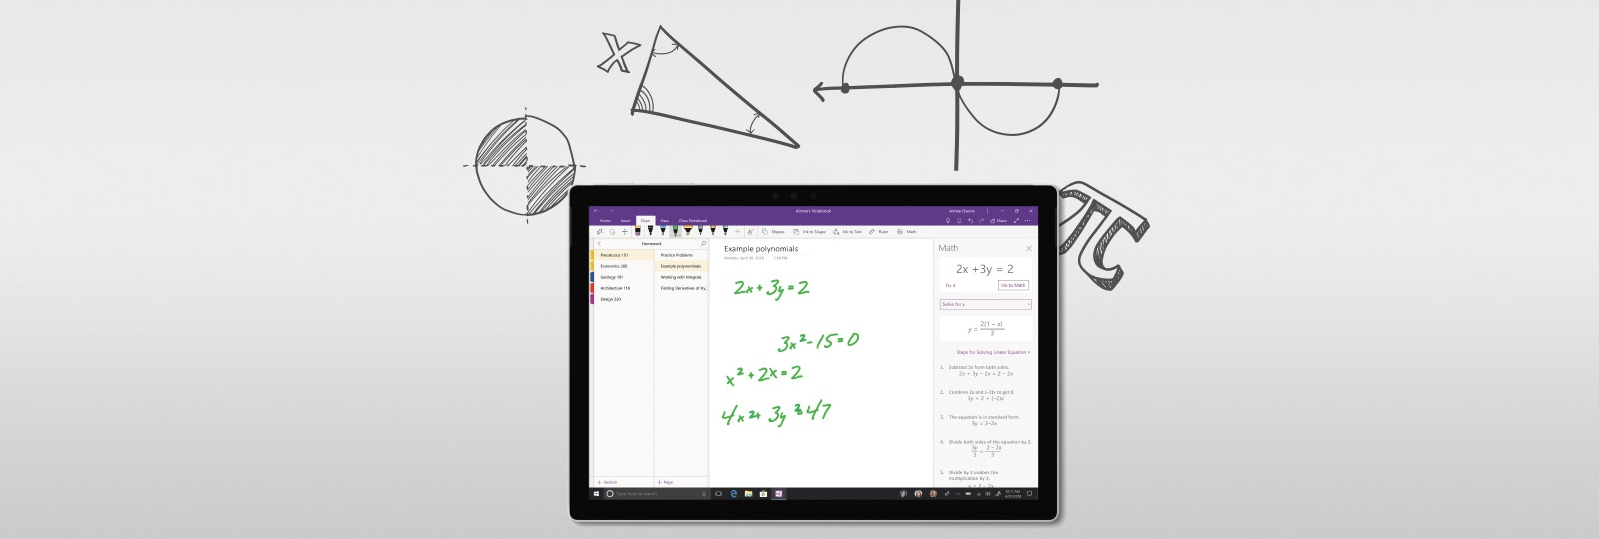 Laptops pcs tablets 2 in 1s phones desktops microsoft a surface device with onenote open and equations written on the screen ccuart Image collections